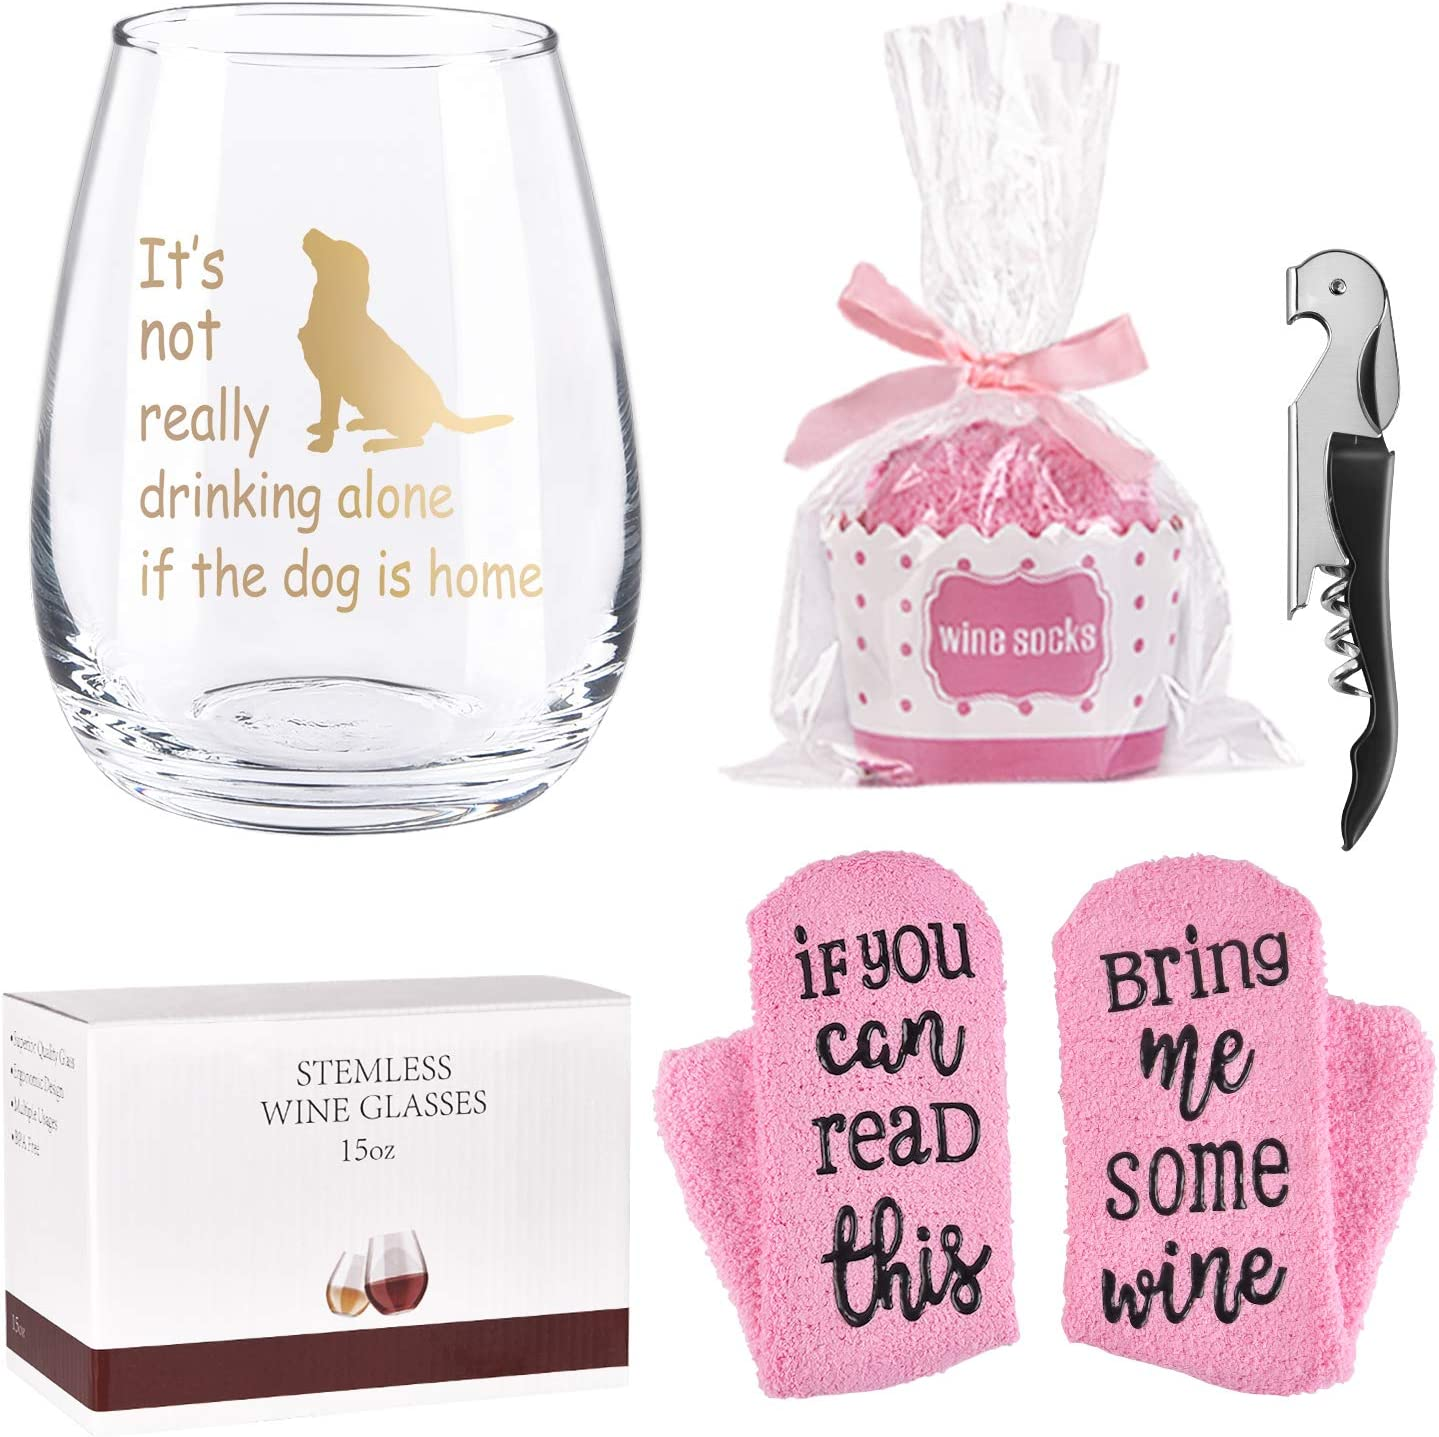 Dog Lover Gift - It's Not Really Drinking Alone If The Dog Is Home Stemless Wine Glass with Cupcake Wine Socks, 15Oz Special Wine Glass Gift Set for Christmas Birthday, Gift Idea for Dog Lover Her Him